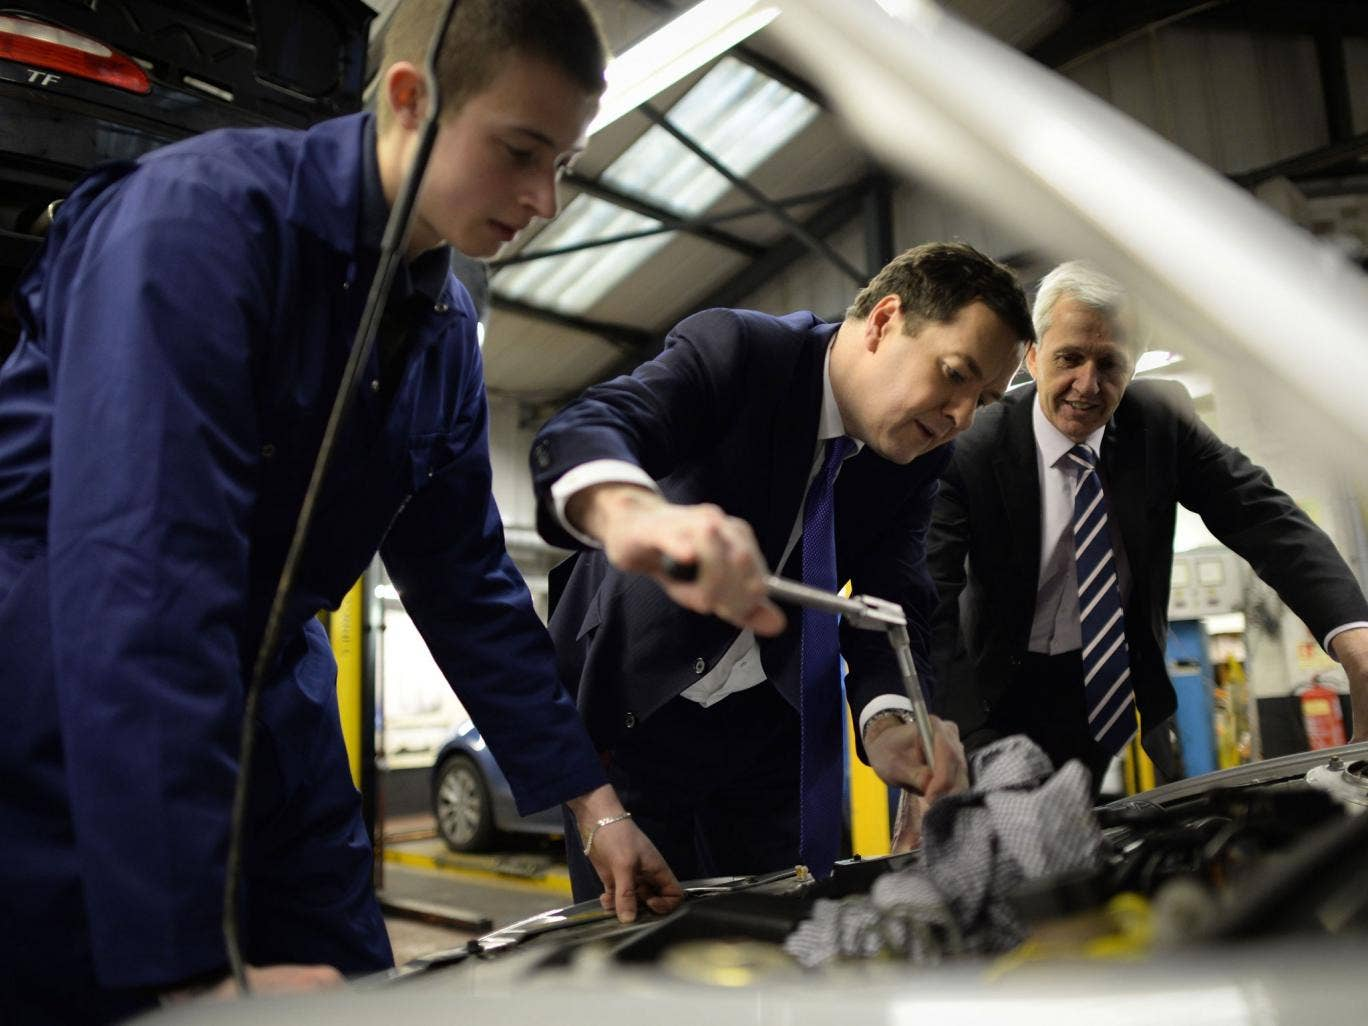 Chancellor George Osborne shows off his mechanical abilities during a visit to a garage in Enfield, north London